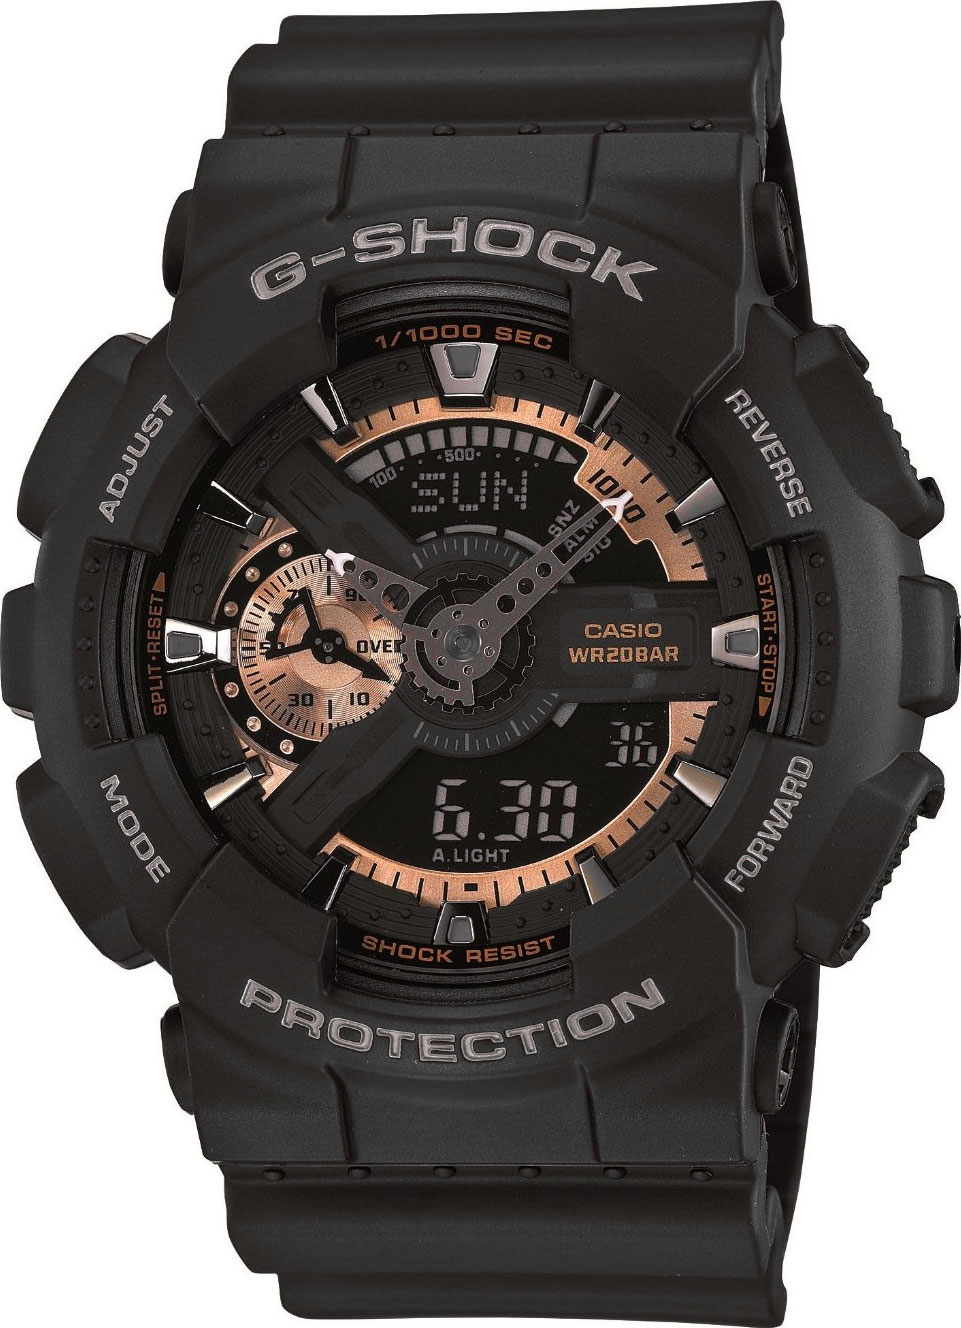 Casio G-shock GA-110RG-1A casio g shock ga 150 1a